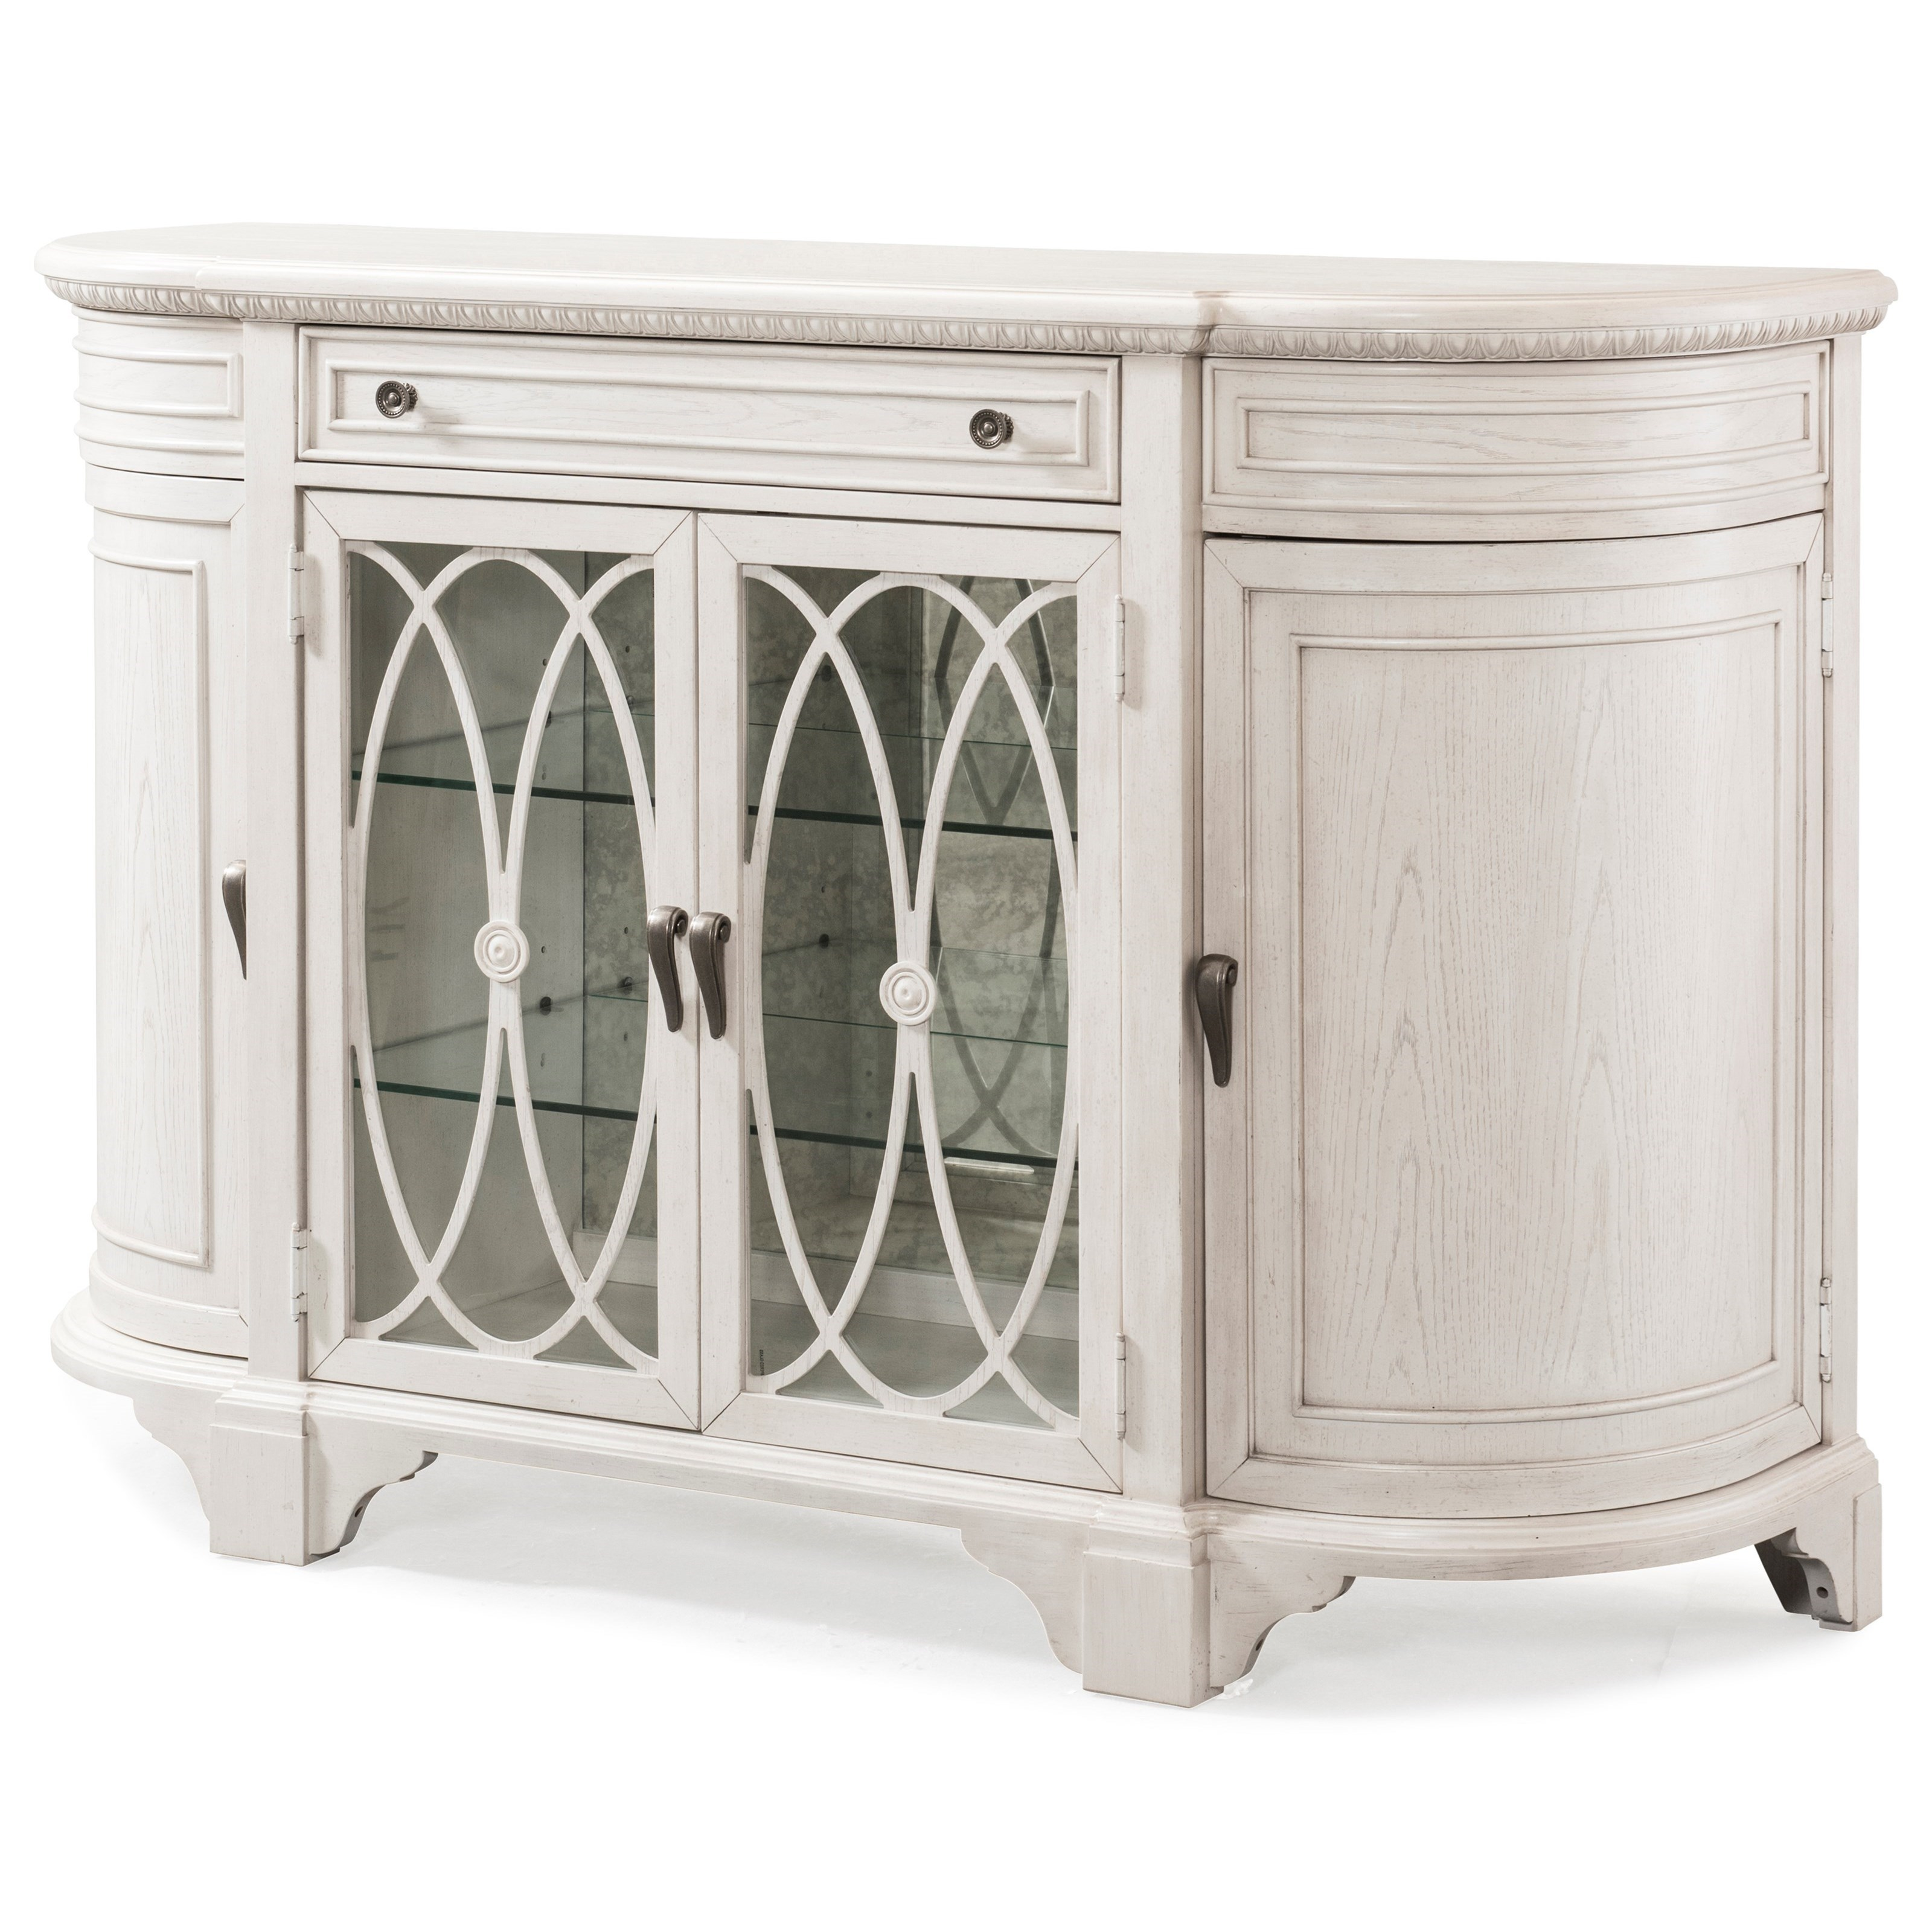 Jasper County Ozburn Dining Room Server by Trisha Yearwood Home Collection by Klaussner at Darvin Furniture